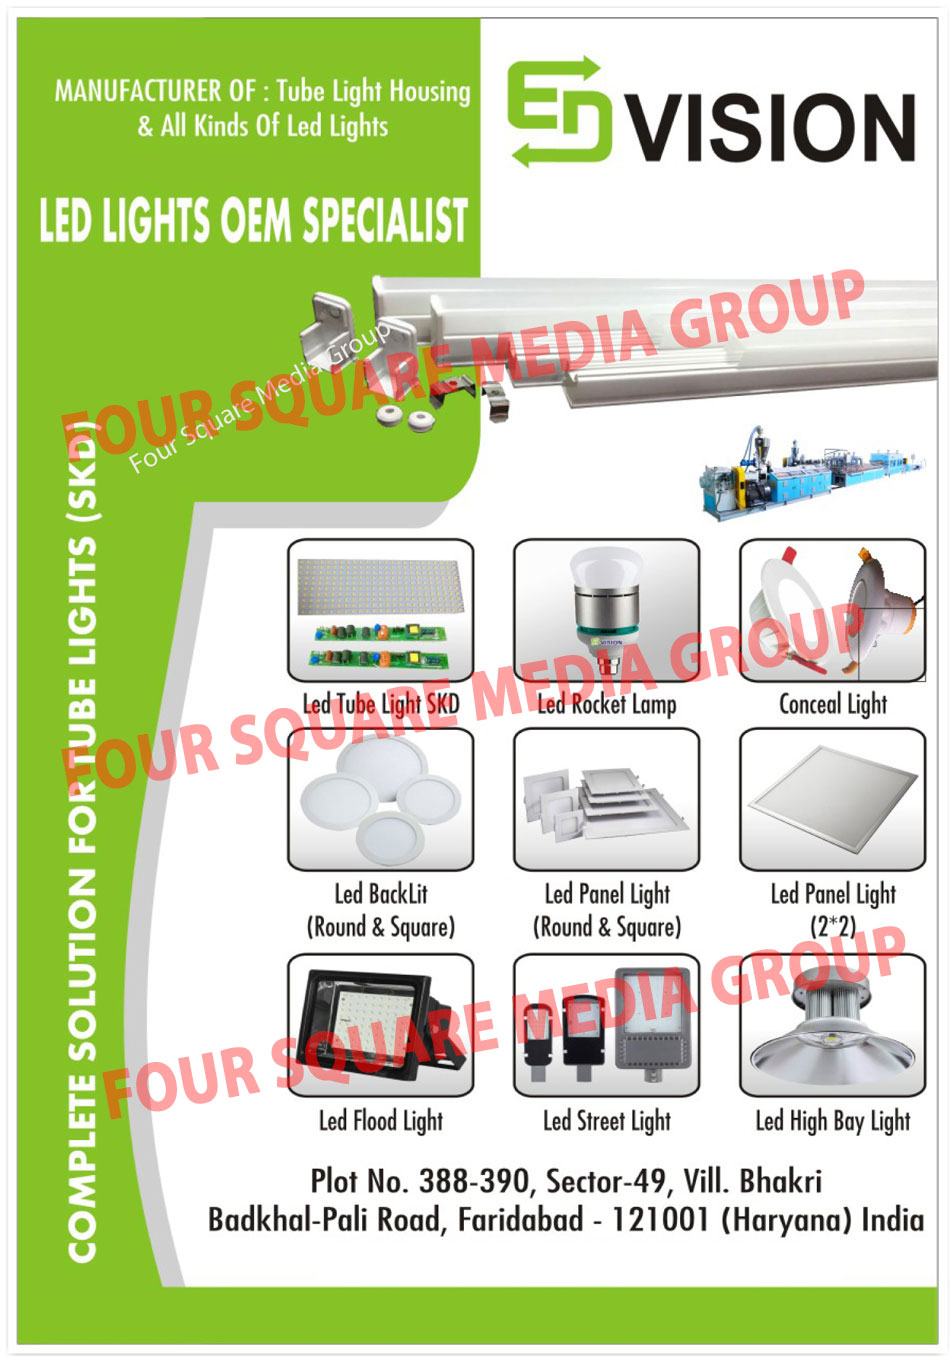 Tube Light Housings, Led Lights, Led Tube Light SKD, Led Rocket Lamps, Conceal Lights, Led Backlits, Led Panel Lights, Led Flood Lights, Led Street Lights, Led Highbay Lights, Led High Bay Lights